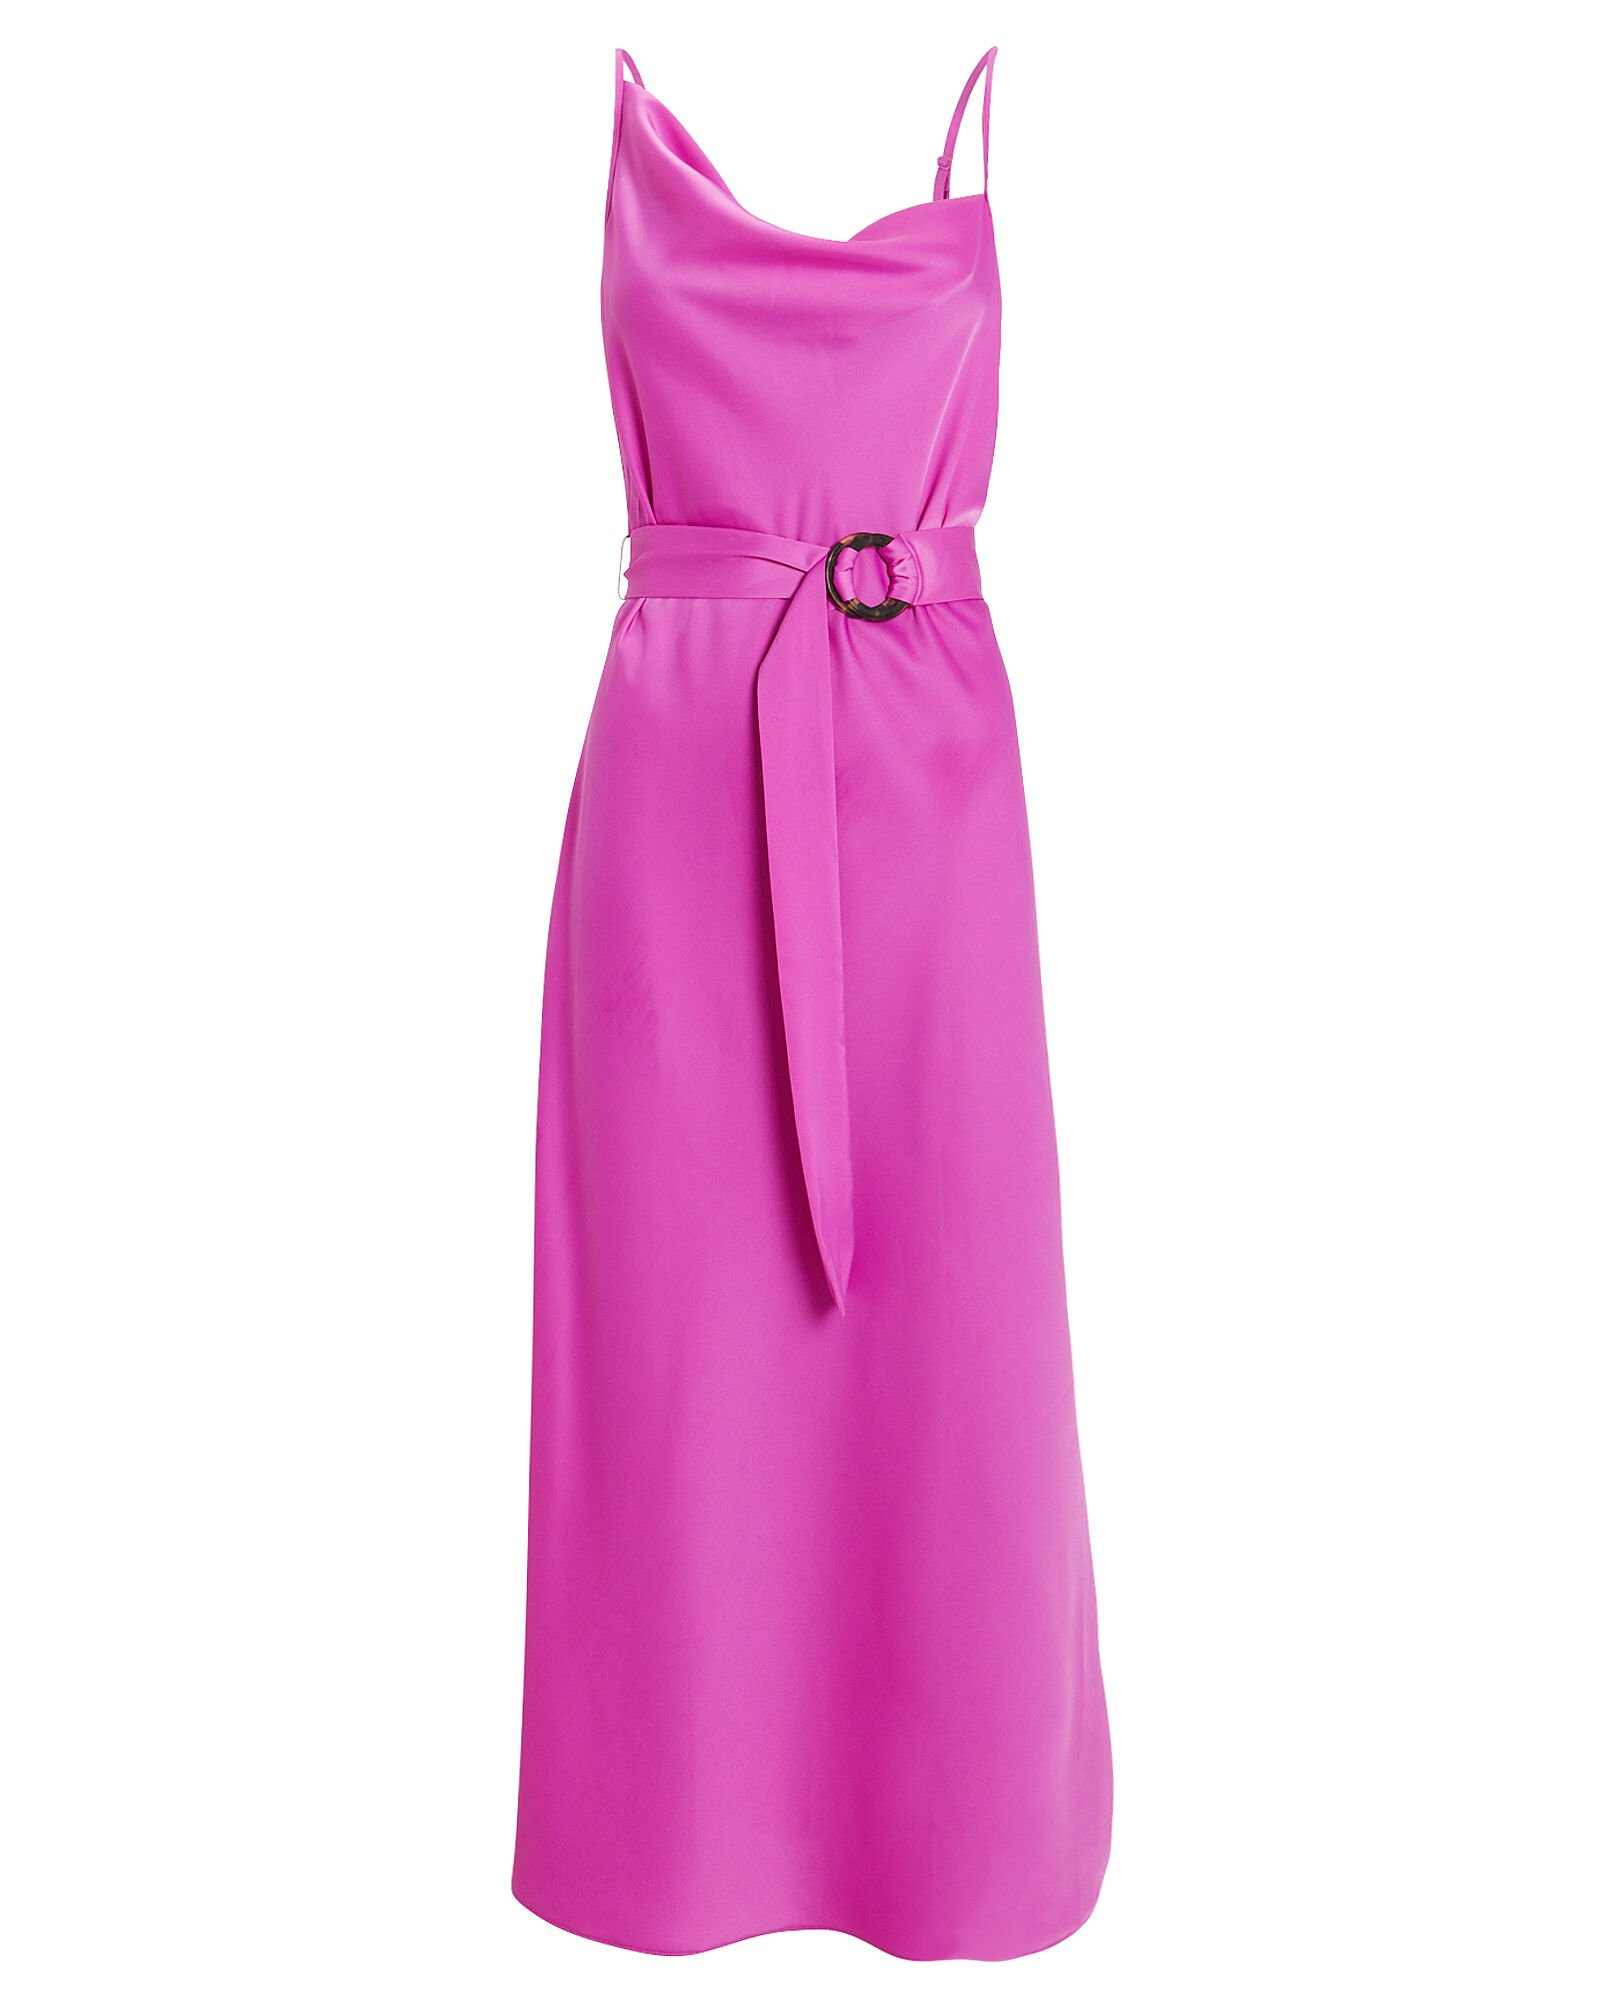 Tilly Midi Dress, PINK-DRK, hi-res